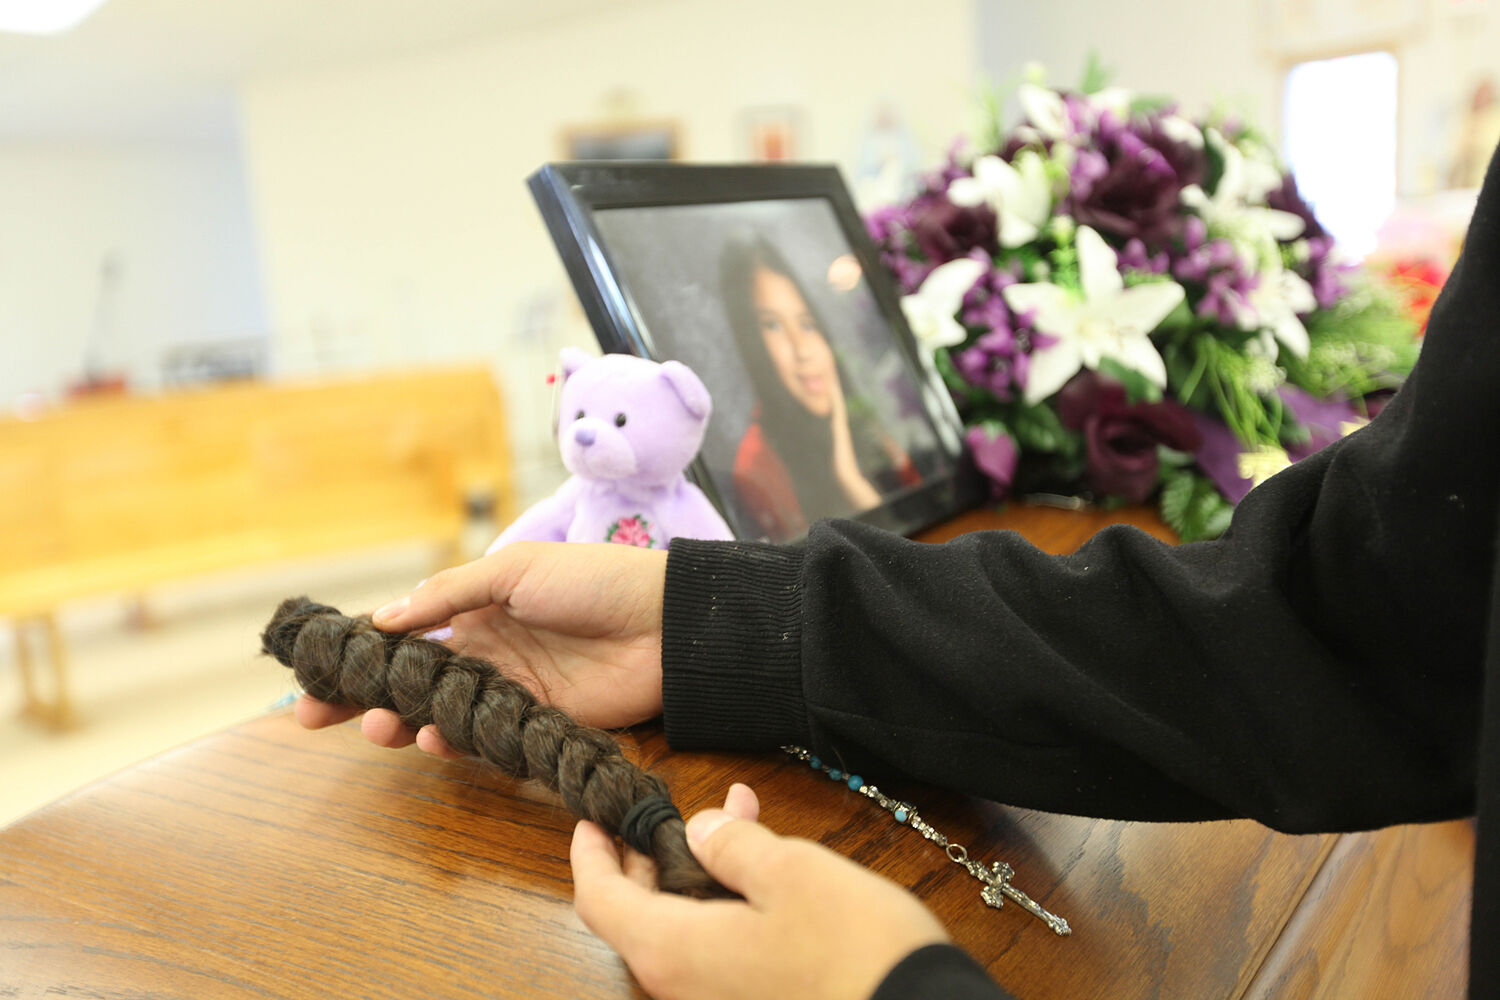 Tina Fontaine's older brother Dillion St. Paul is grief stricken as spends some final moments with his little sister's casket after her funeral in Sagkeeng First Nation.  During the service Dillion St. Paul cut off his braided ponytail and left it on her casket as part of a native family tradition.